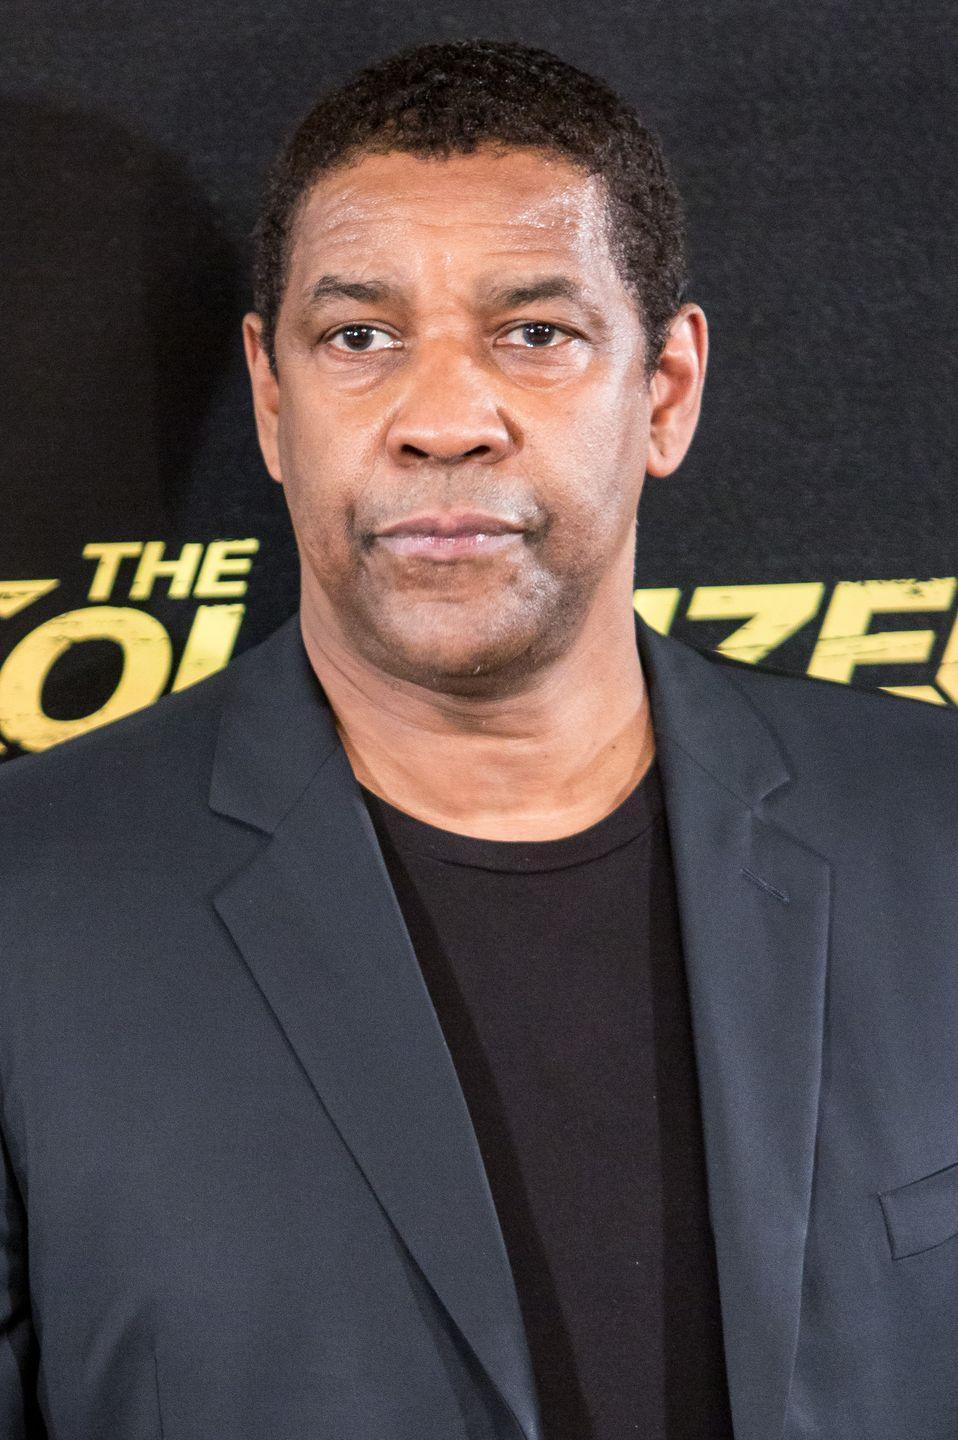 """<p>The Oscar-winning actor has<a href=""""https://parade.com/27900/jeannewolf/0112-denzel-washington-book-of-eli/"""" rel=""""nofollow noopener"""" target=""""_blank"""" data-ylk=""""slk:often spoken about his faith in interviews"""" class=""""link rapid-noclick-resp""""> often spoken about his faith in interviews</a>. """"The fundamental message is in the Bible, which I've read three times from front to back, along with some of the Koran and the Torah,"""" he told <em>Parade </em>Magazine. """"If you don't practice love, you're missing the point. I believe in love thy neighbor."""" </p>"""